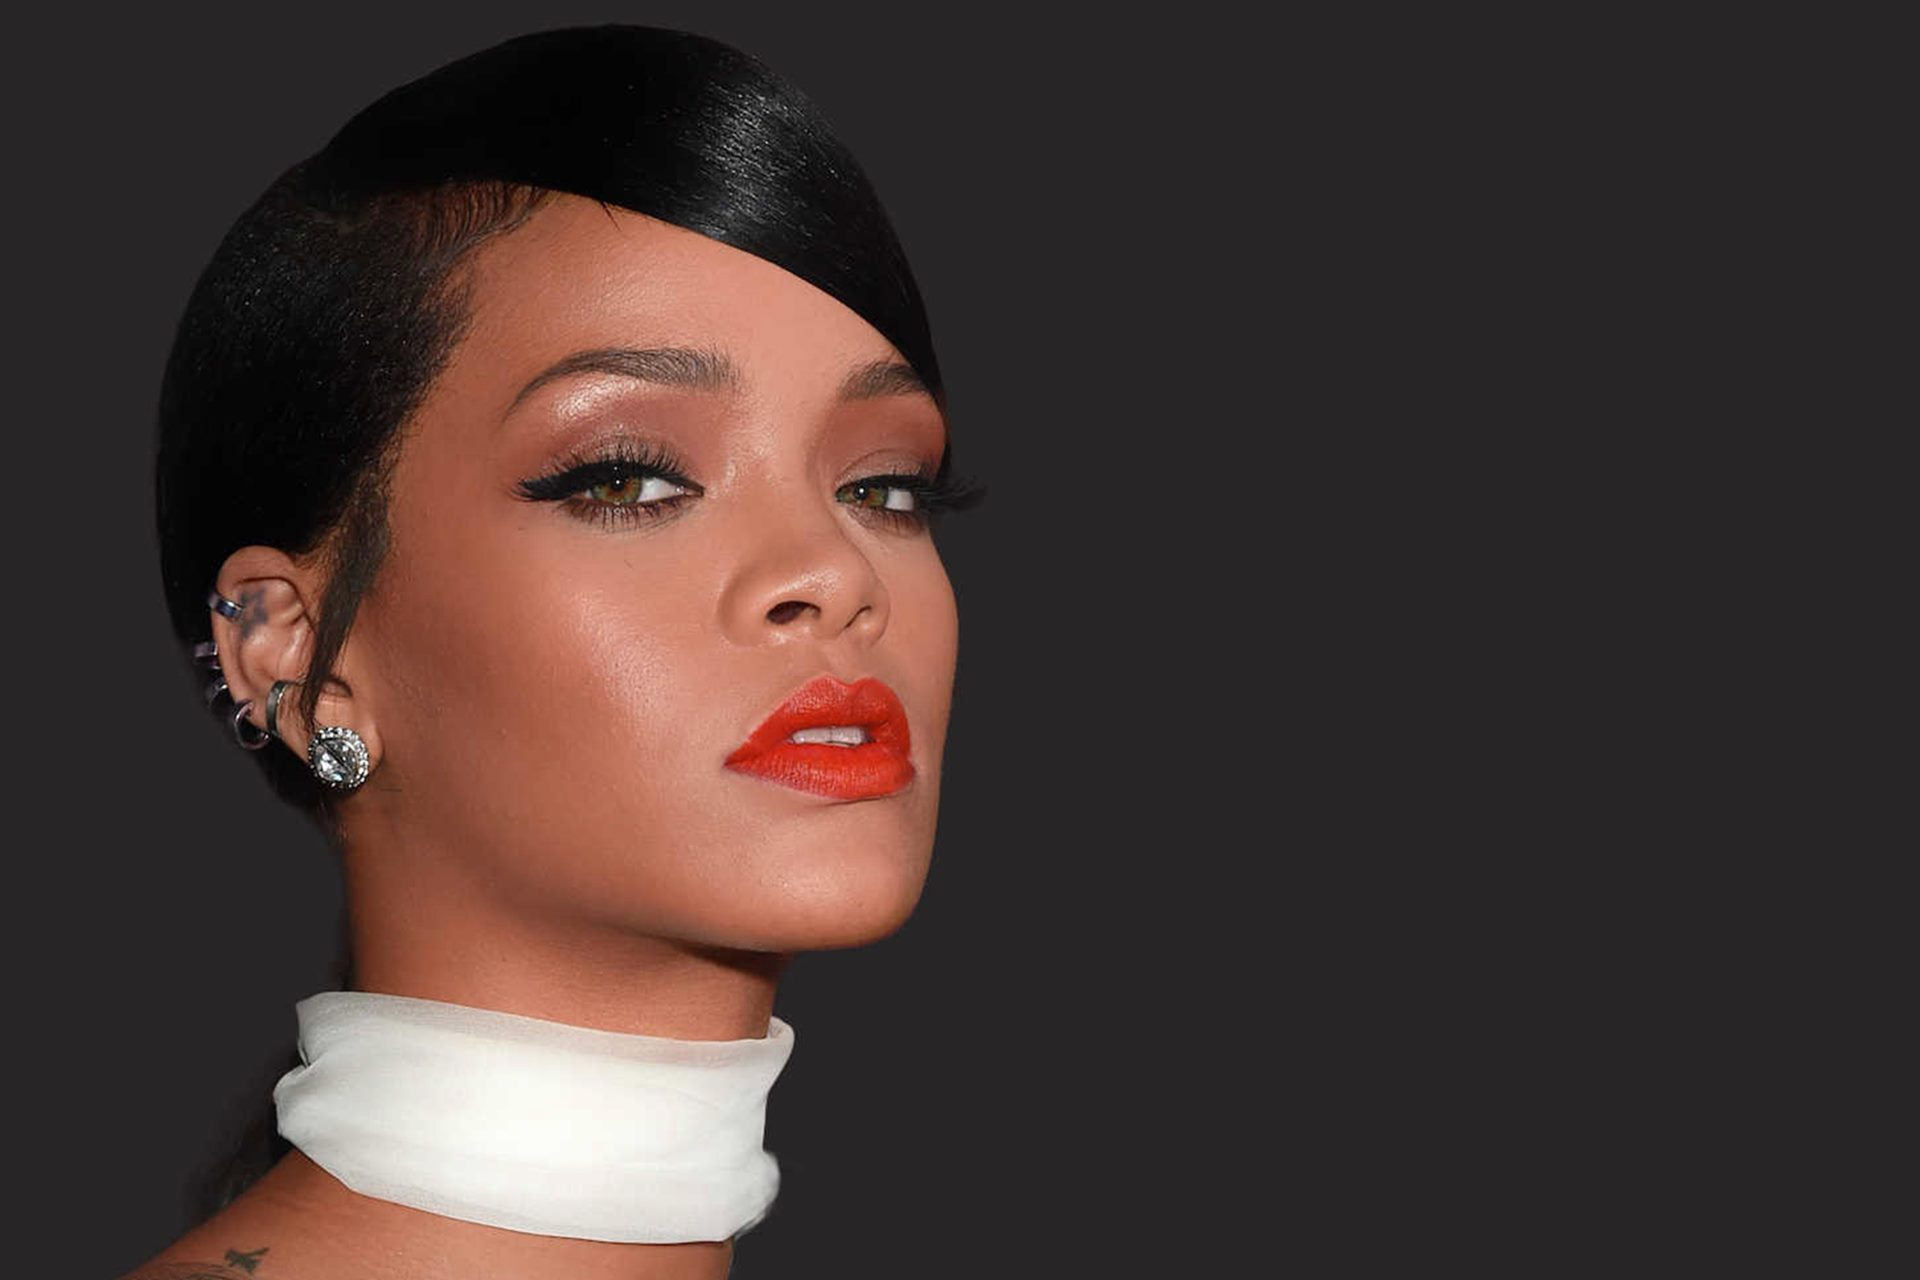 Rihanna Red Lips And Hot Background Wallpapers Hd Download